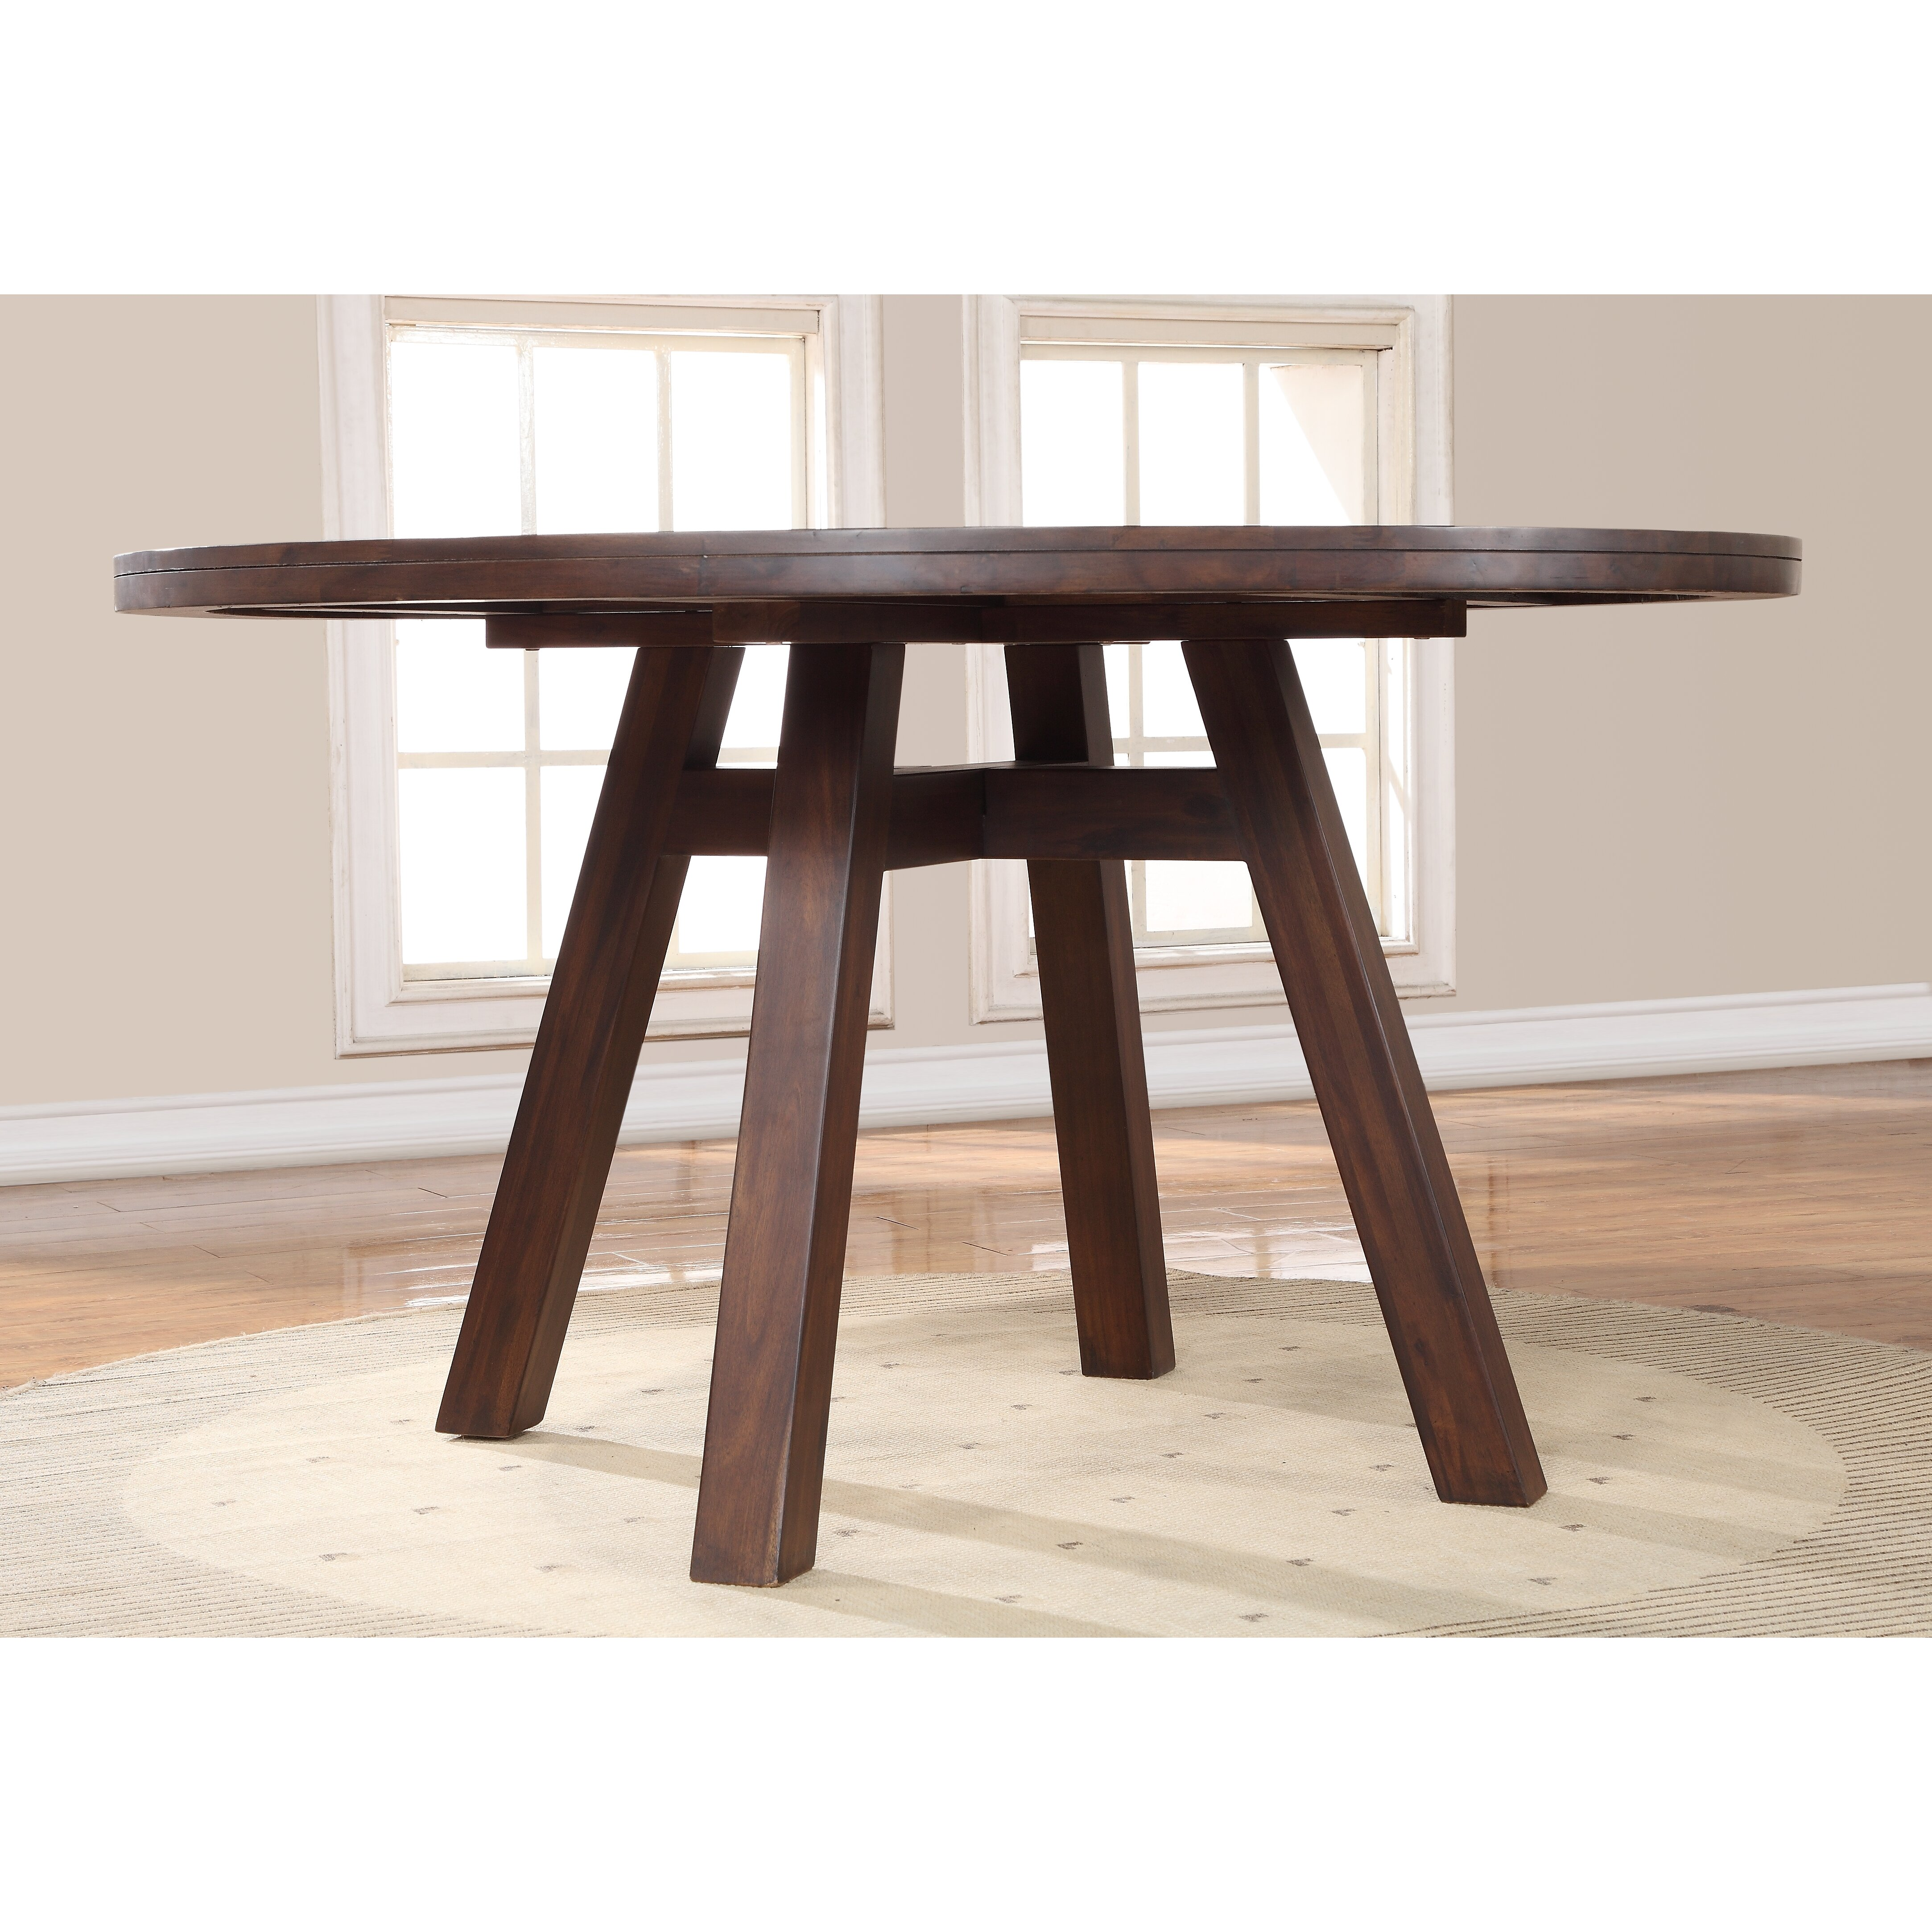 Modus portland dining table reviews wayfair for Wayfair dining table